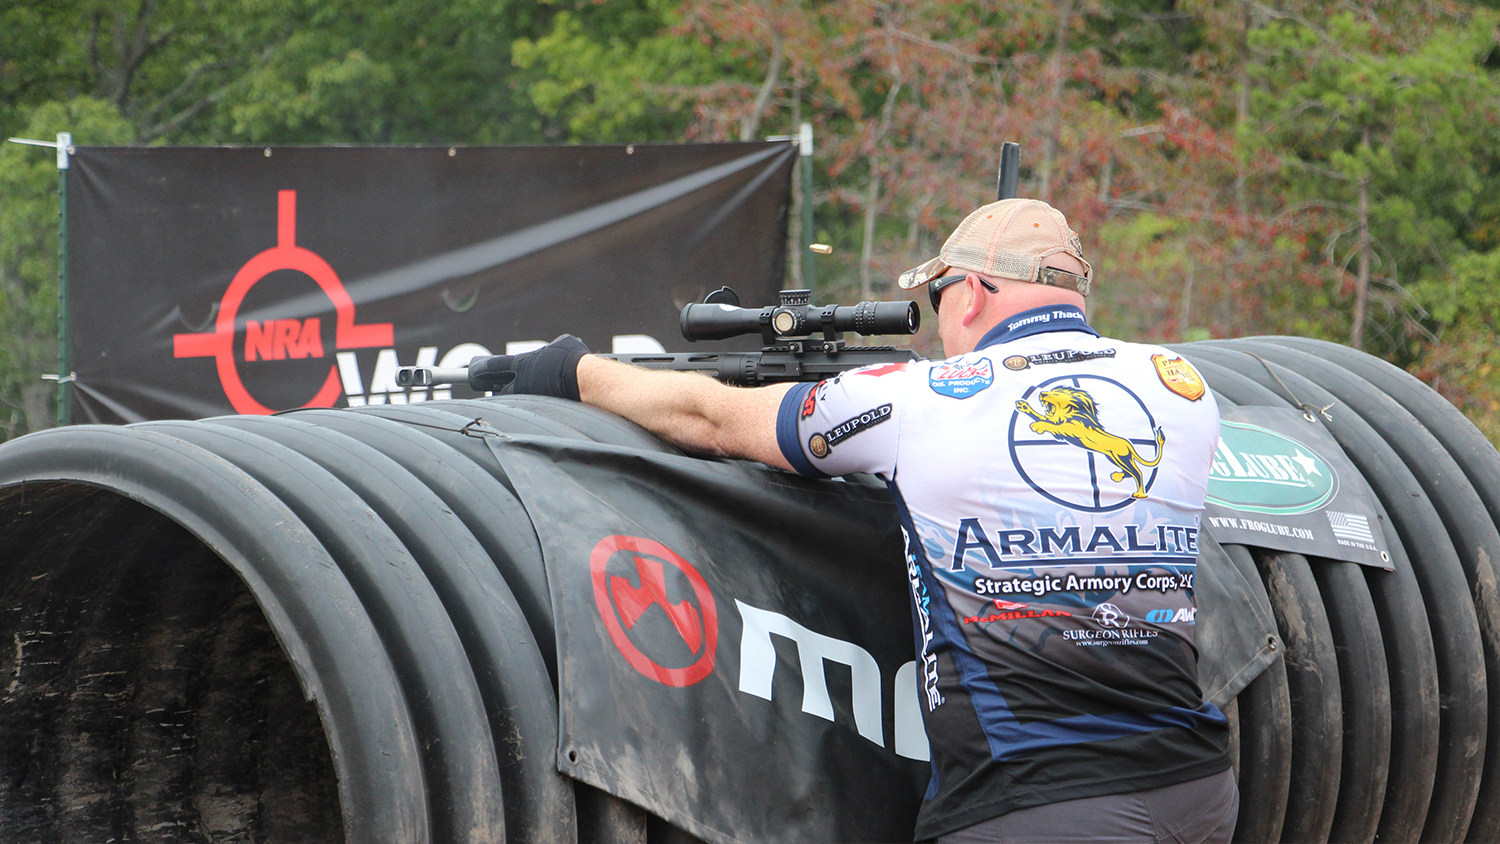 5 Things to Know About the NRA World Shooting Championship